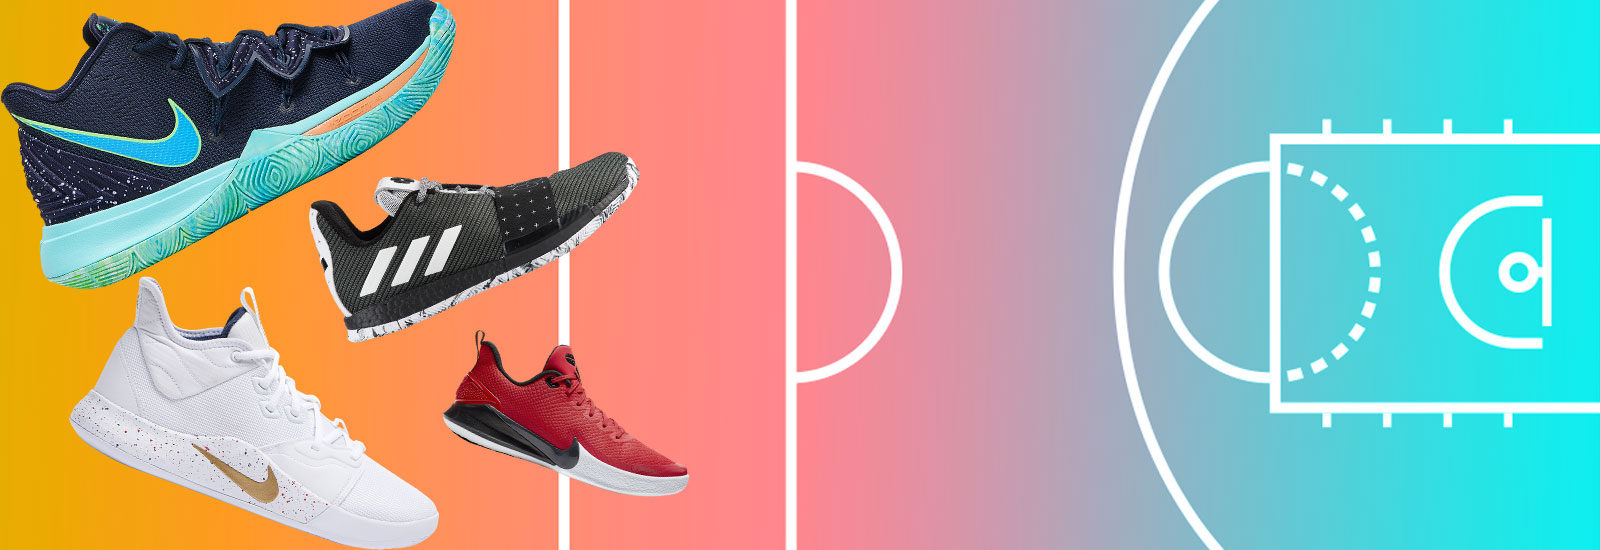 Basketball Shoes for Volleyball Spotlight